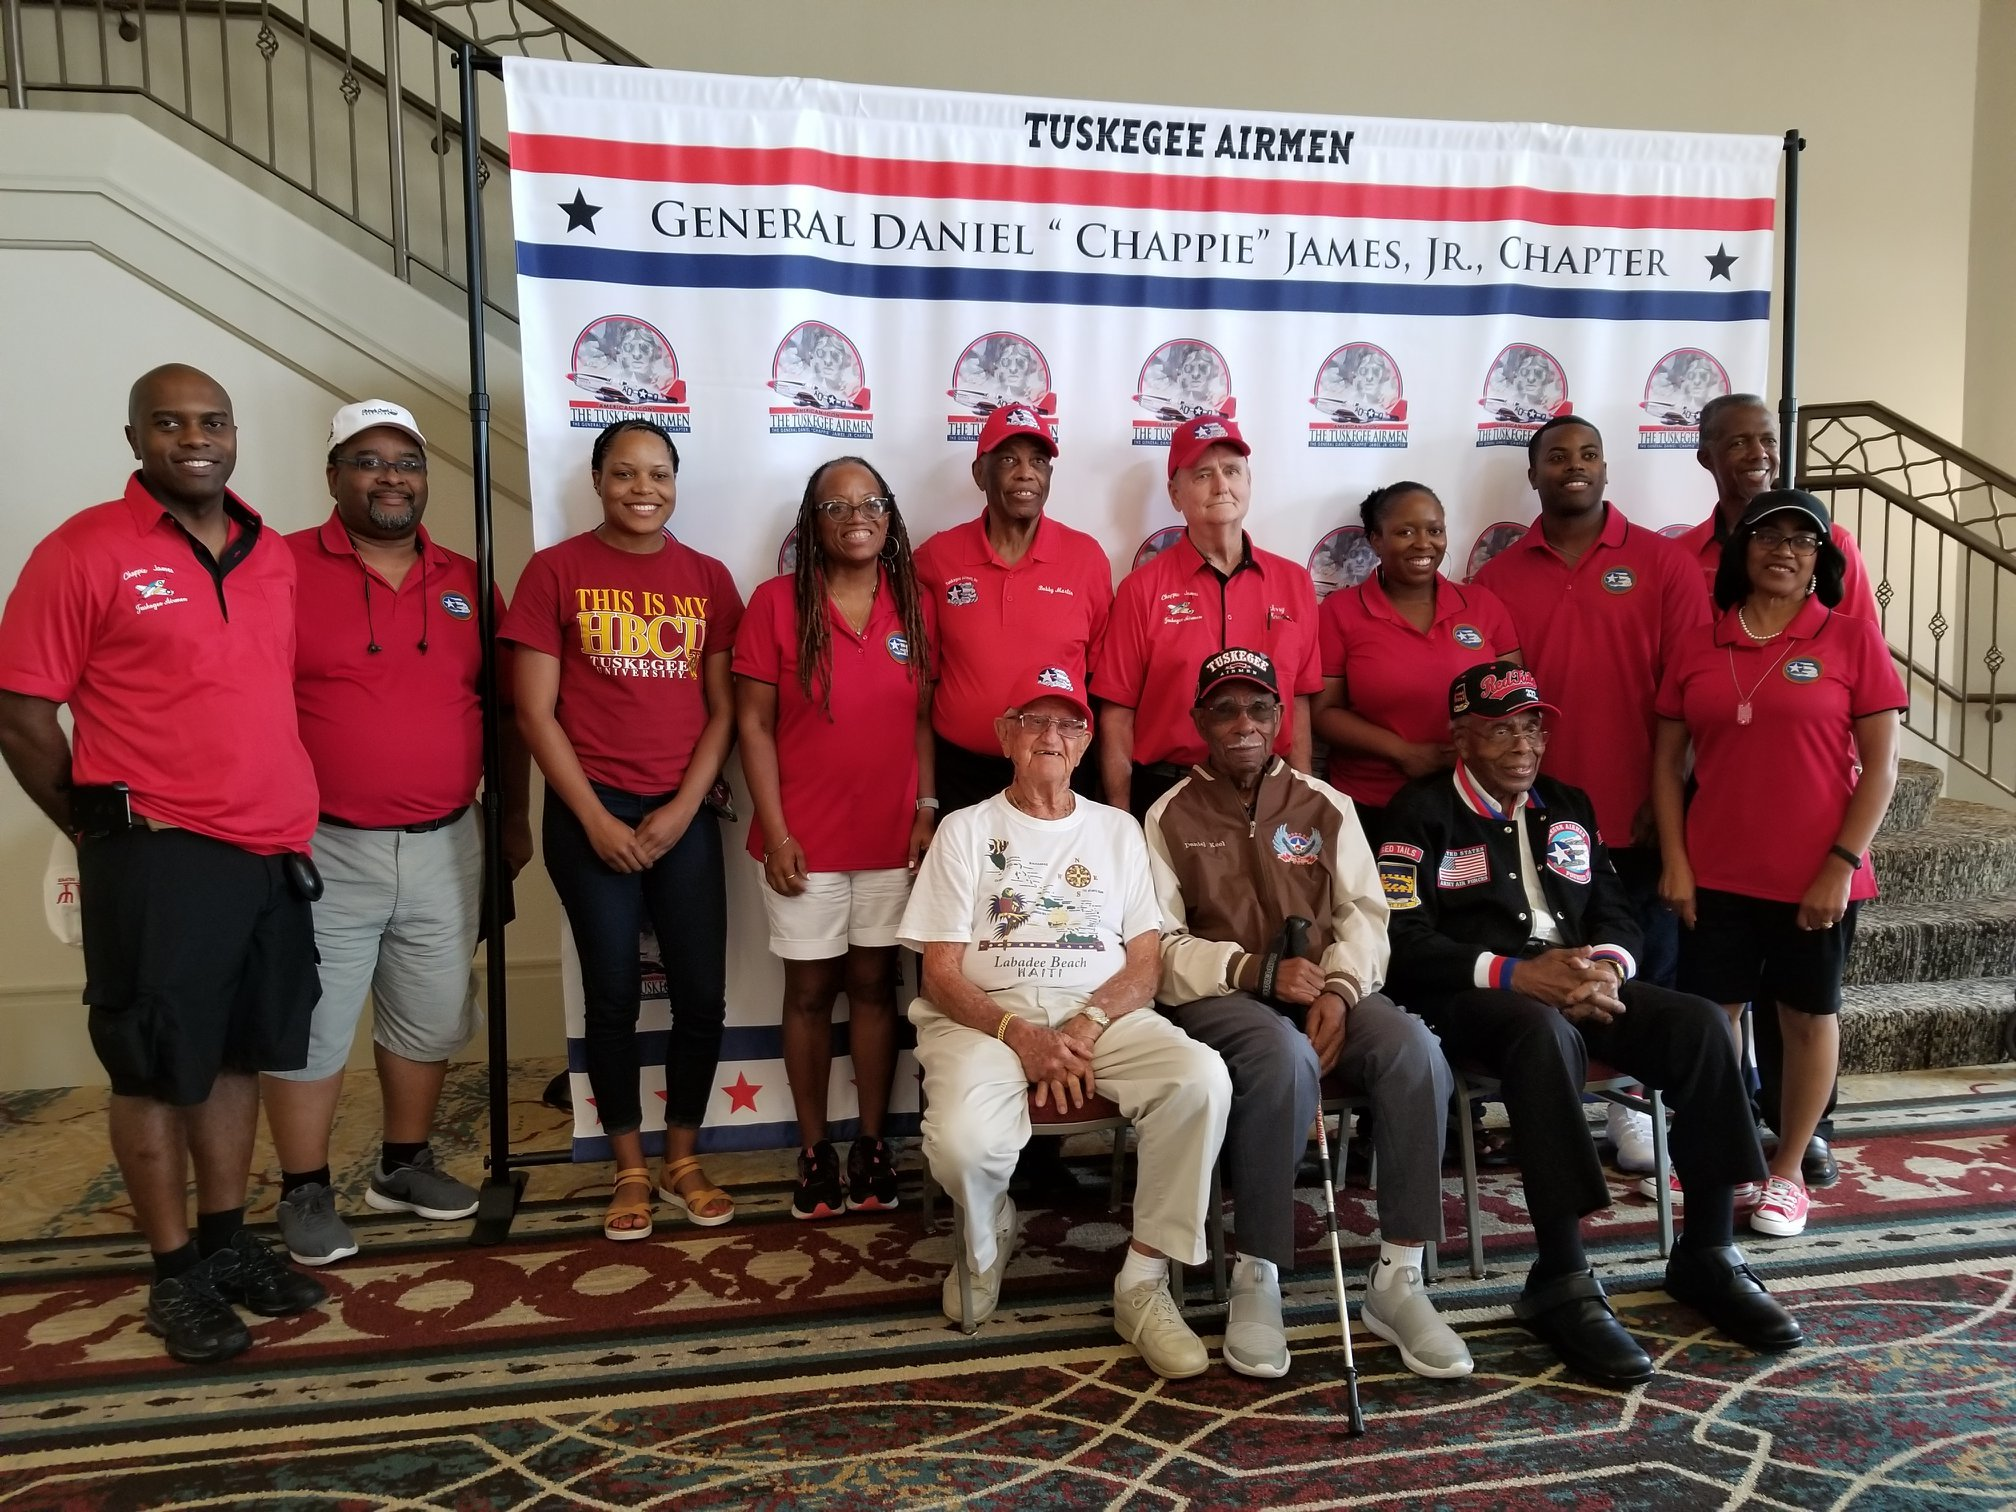 Tuskegee Airmen 2nd Annual Charity Golf Tournament gallery image #12